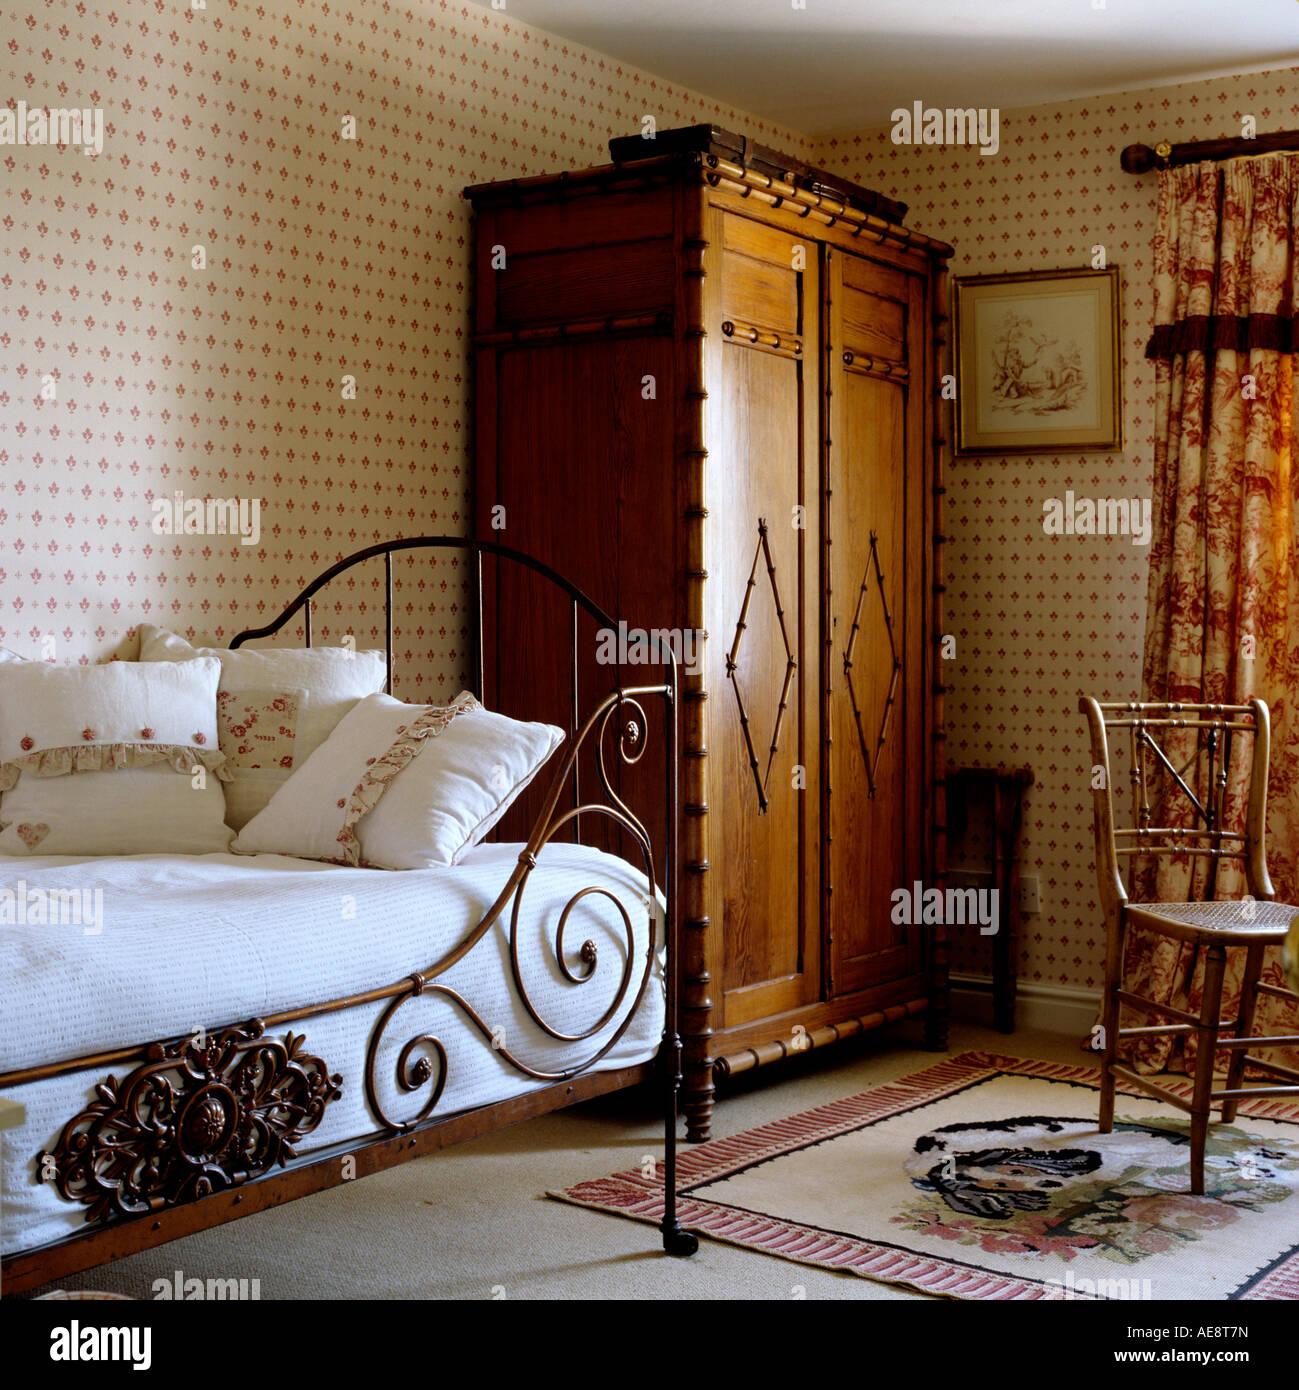 English Country Bedroom Victorian Wrought Iron Bed And Large Wardrobe In Bedroom Of